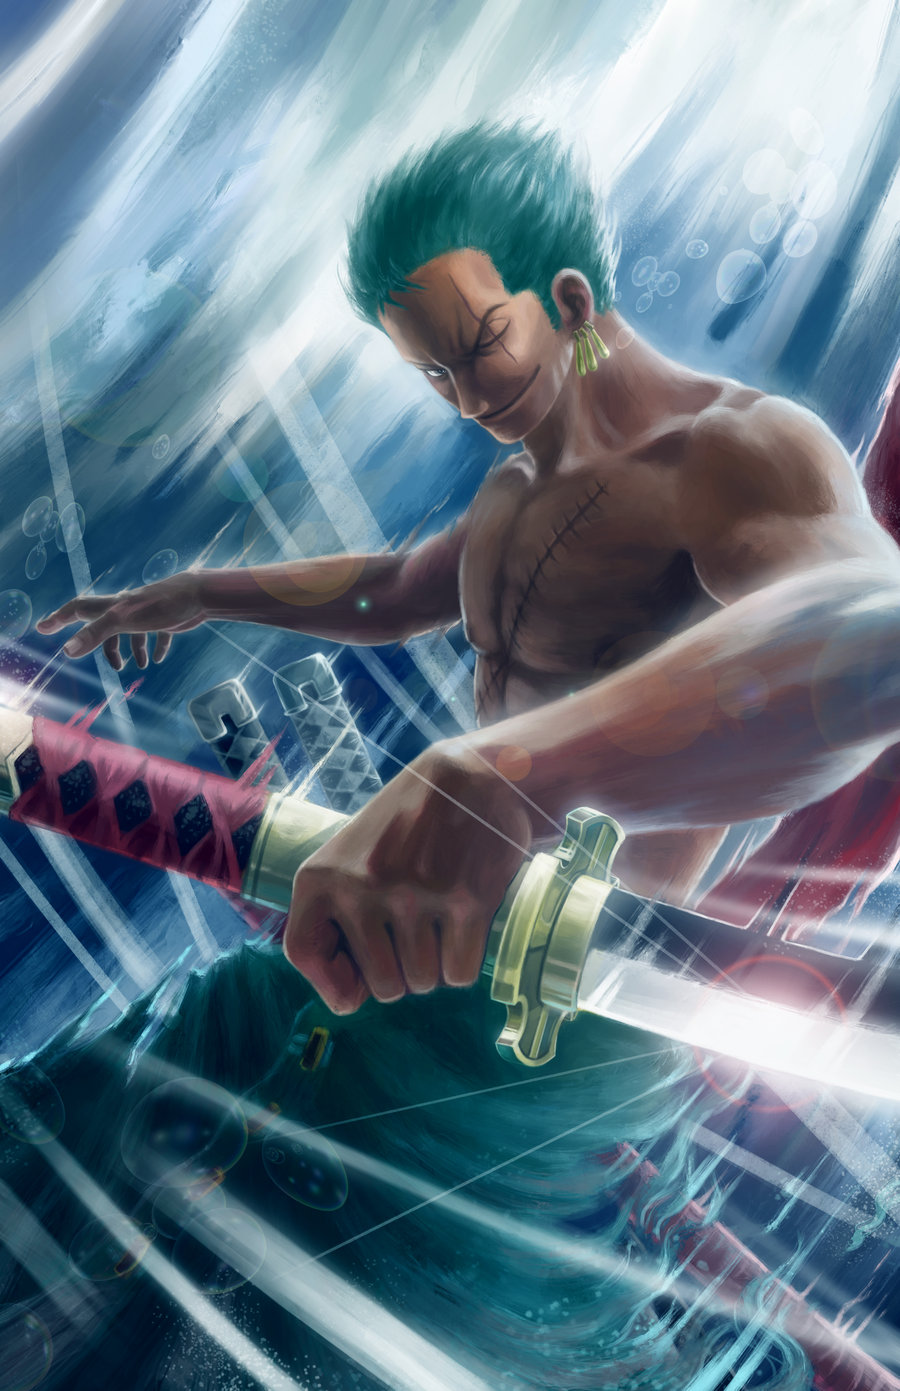 Roronoa Zoro One Piece Mobile Wallpaper 1299399 Zerochan Anime Image Board